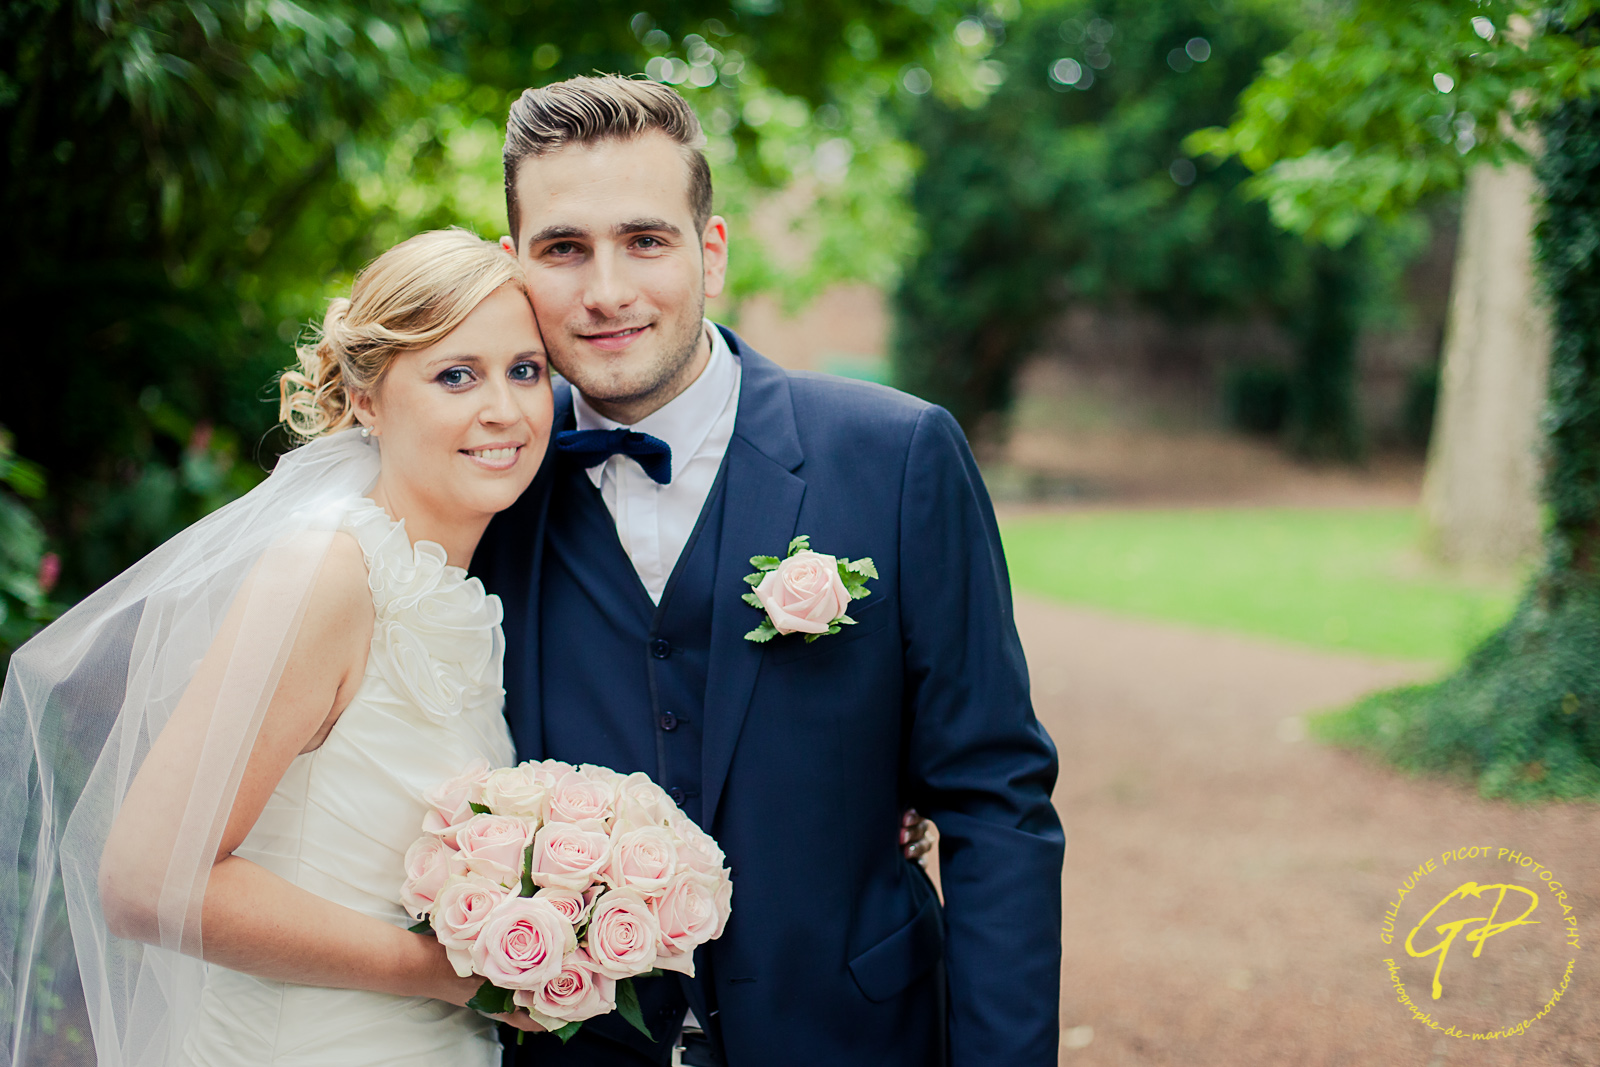 photographe mariage orchies-34